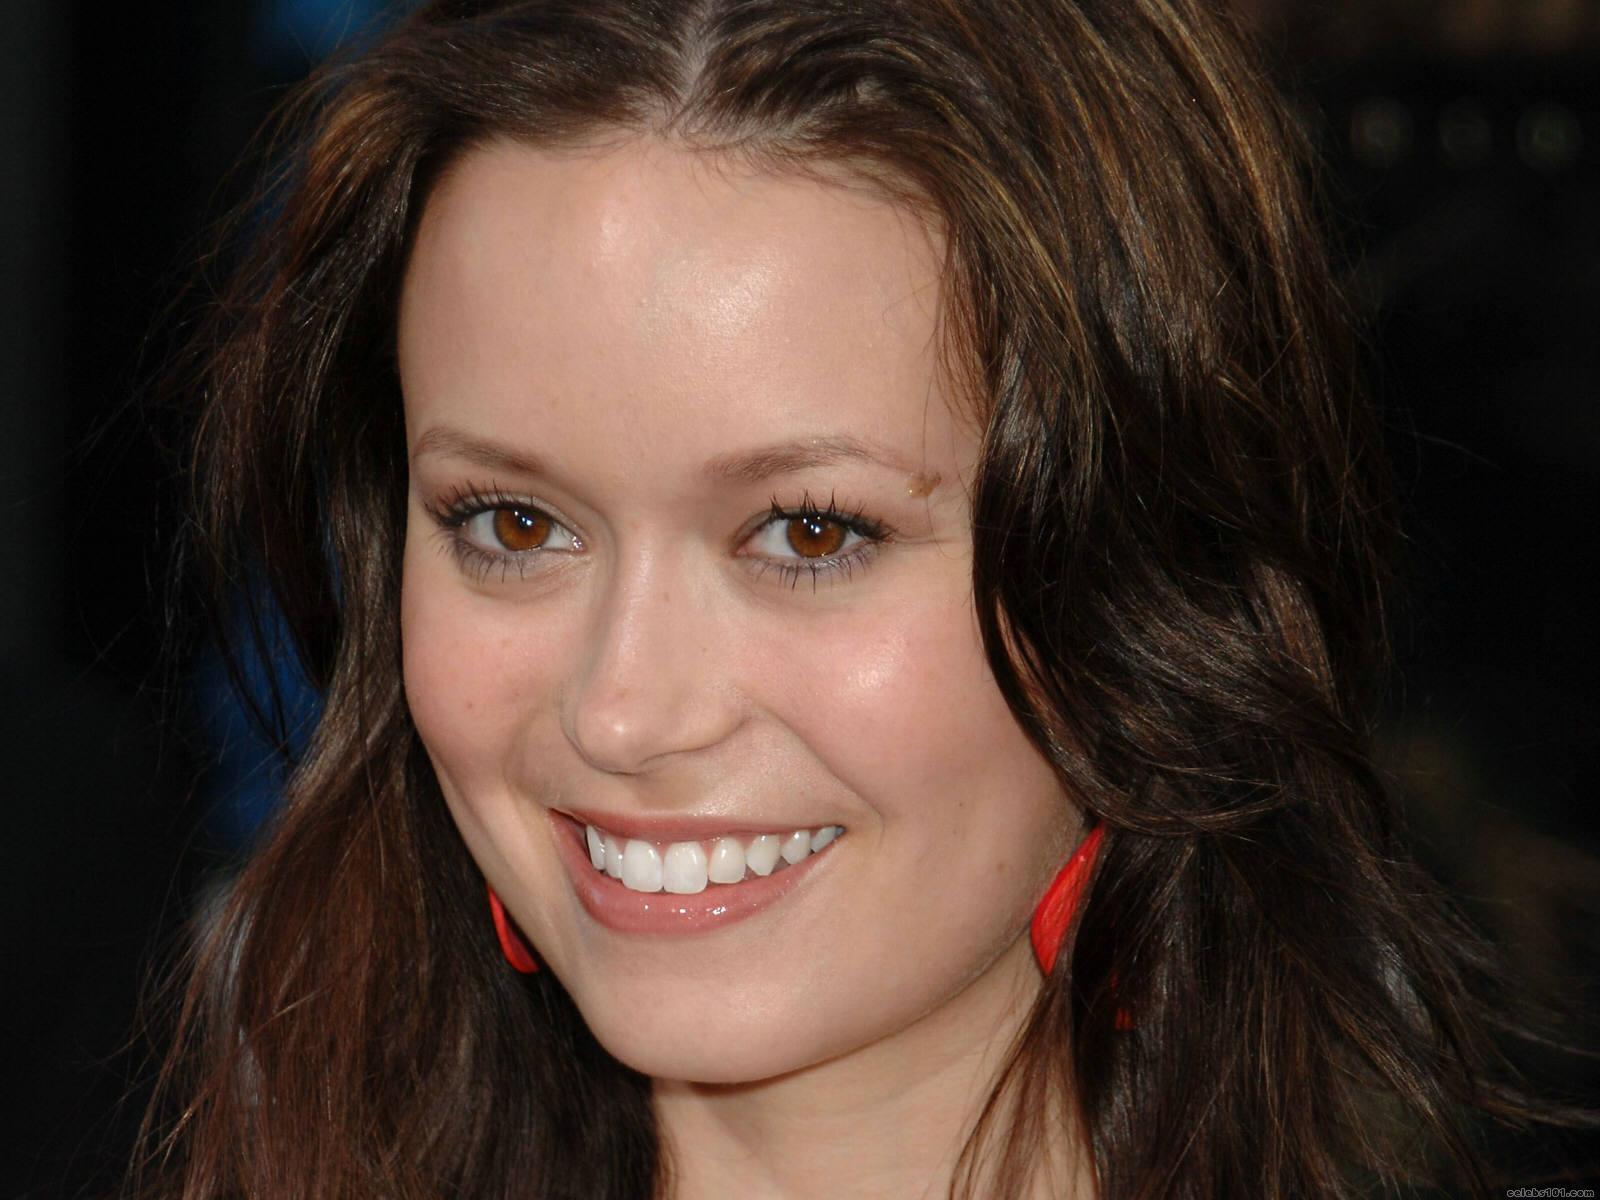 The 36-year old daughter of father (?) and mother(?), 168 cm tall Summer Glau in 2018 photo